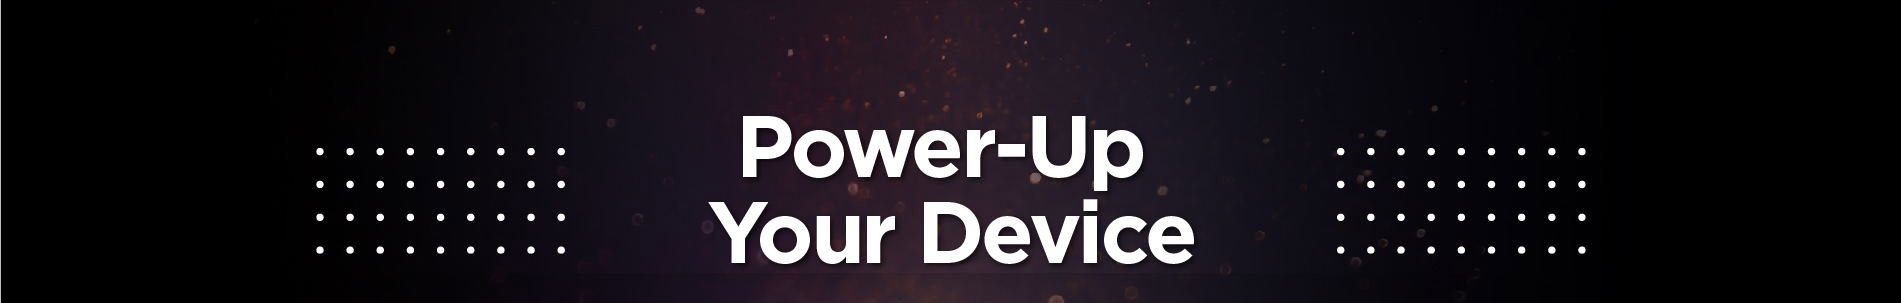 Power Up Your Device Promotion